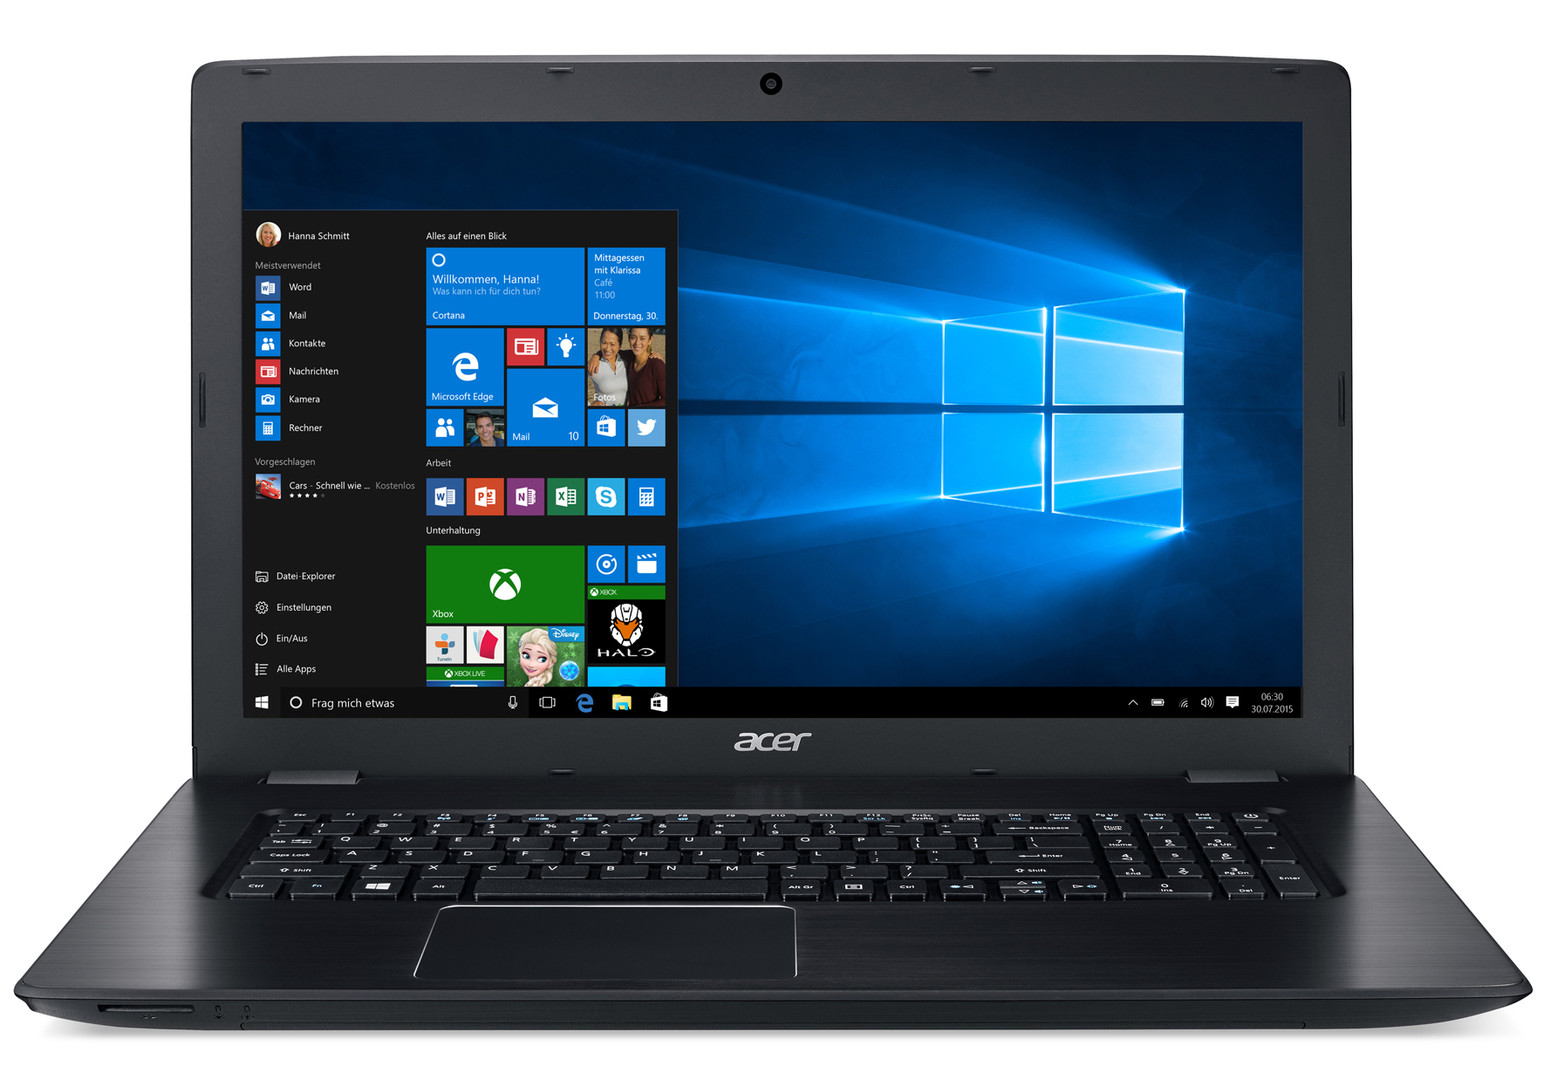 ACER ASPIRE E5-722 INTEL WLAN DRIVERS FOR WINDOWS MAC